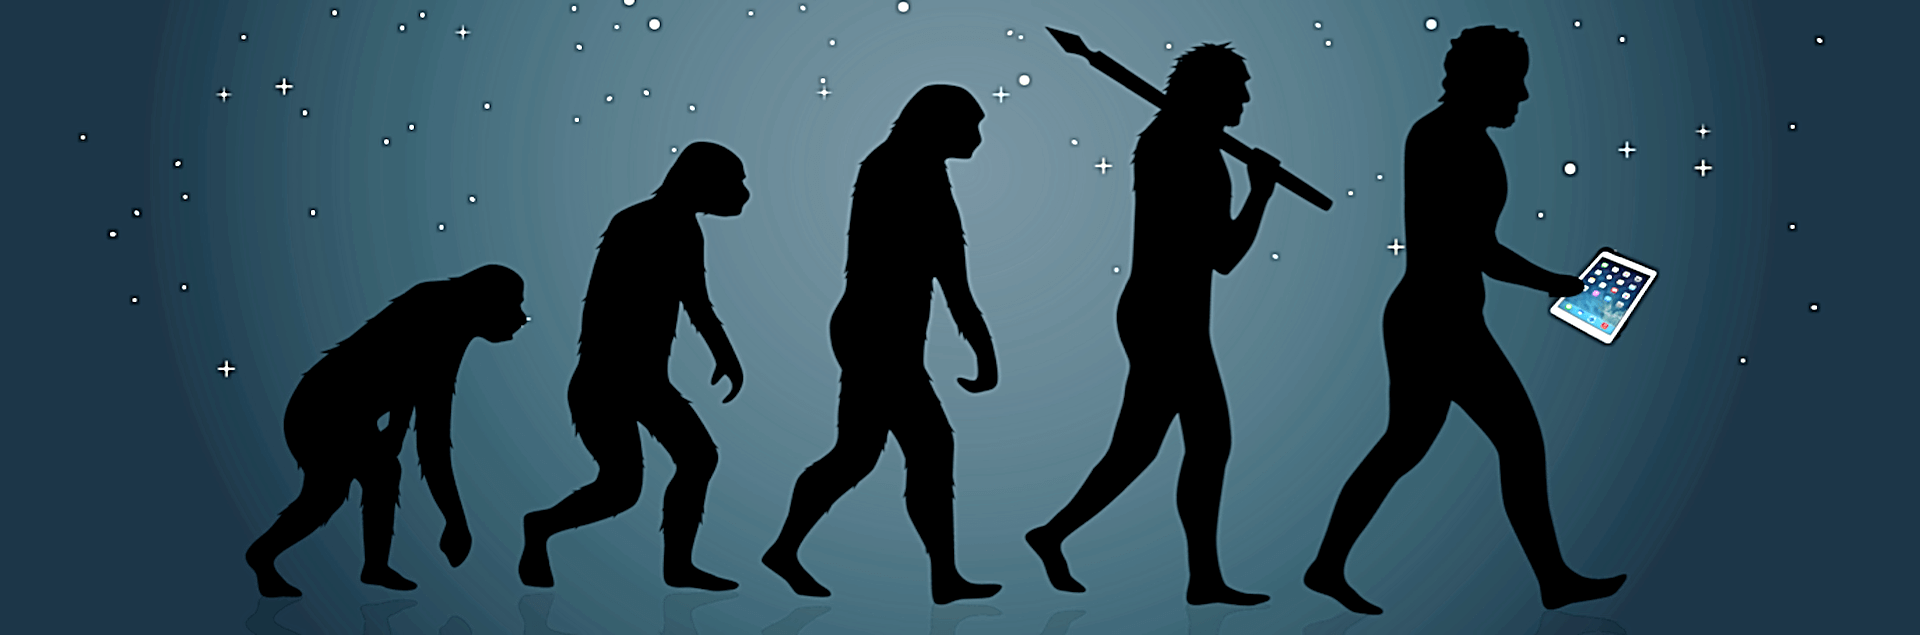 Digital Darwin evolution wipad wide banner -859409-edited